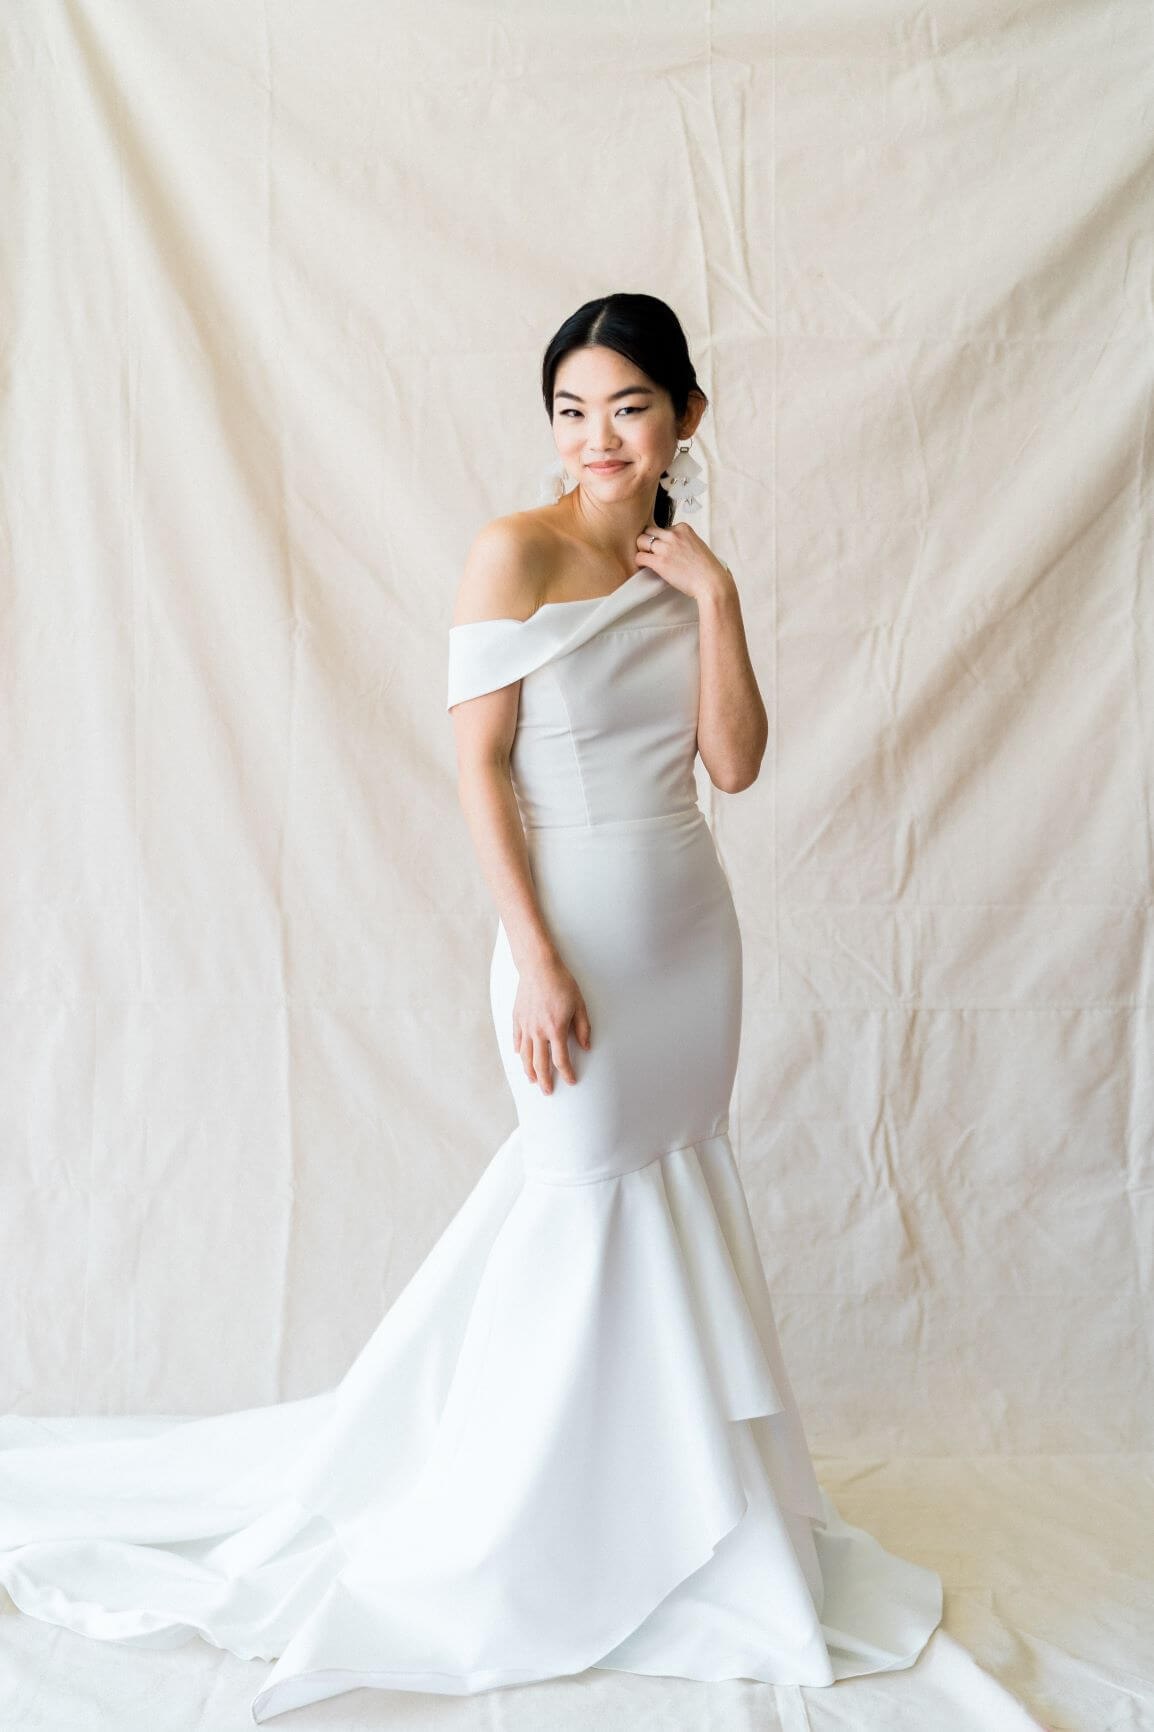 wedding gown fitted white gown bride